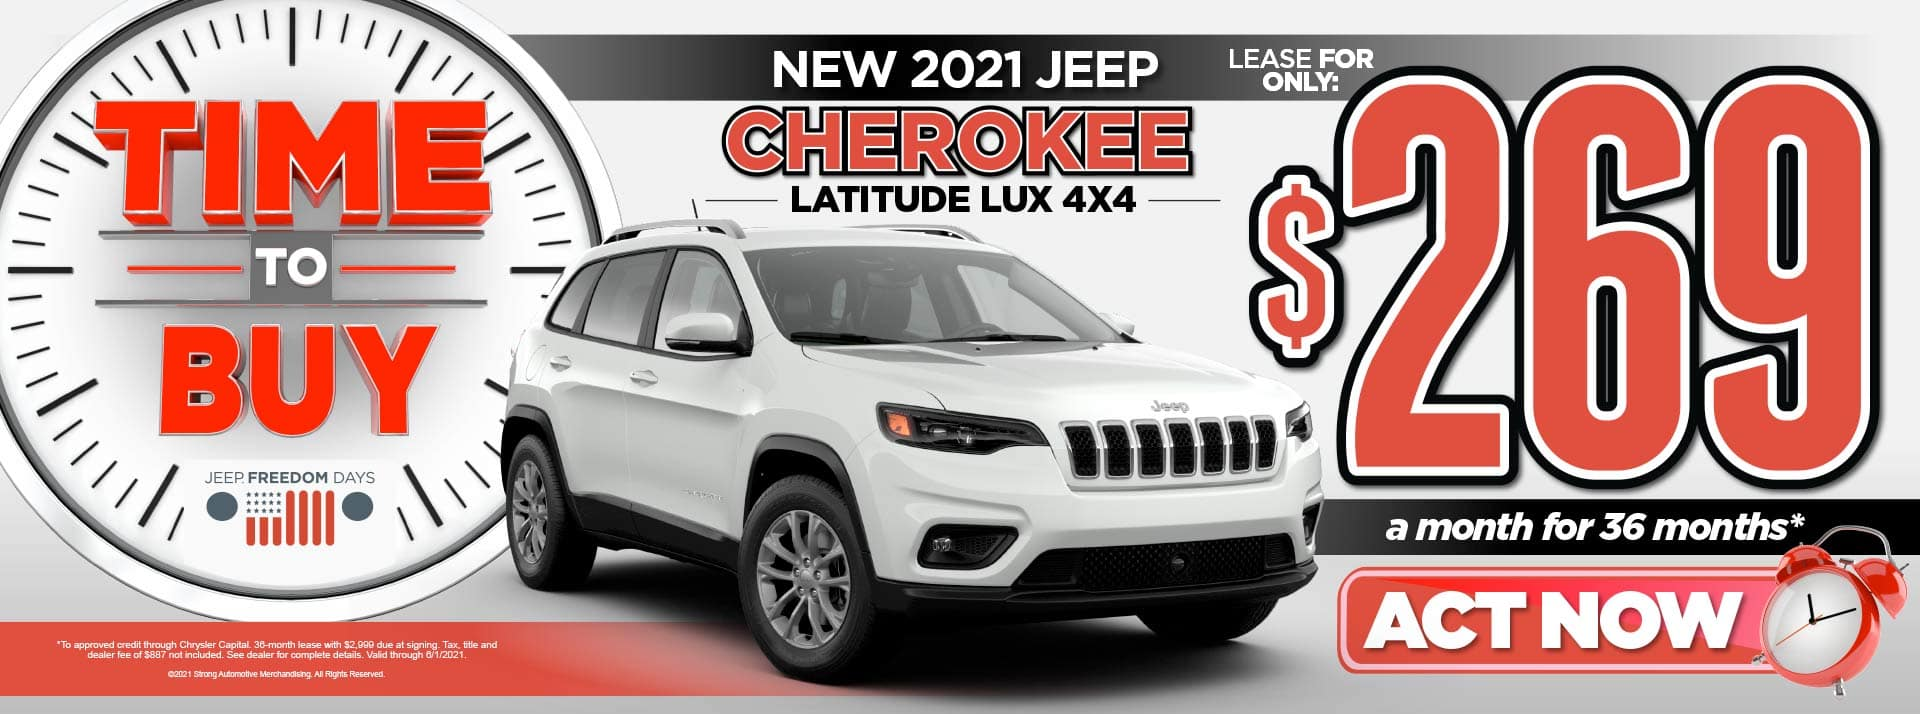 NEW 2021 JEEP CHEROKEE LATITUDE LEASE FOR $269/MO* ACT NOW